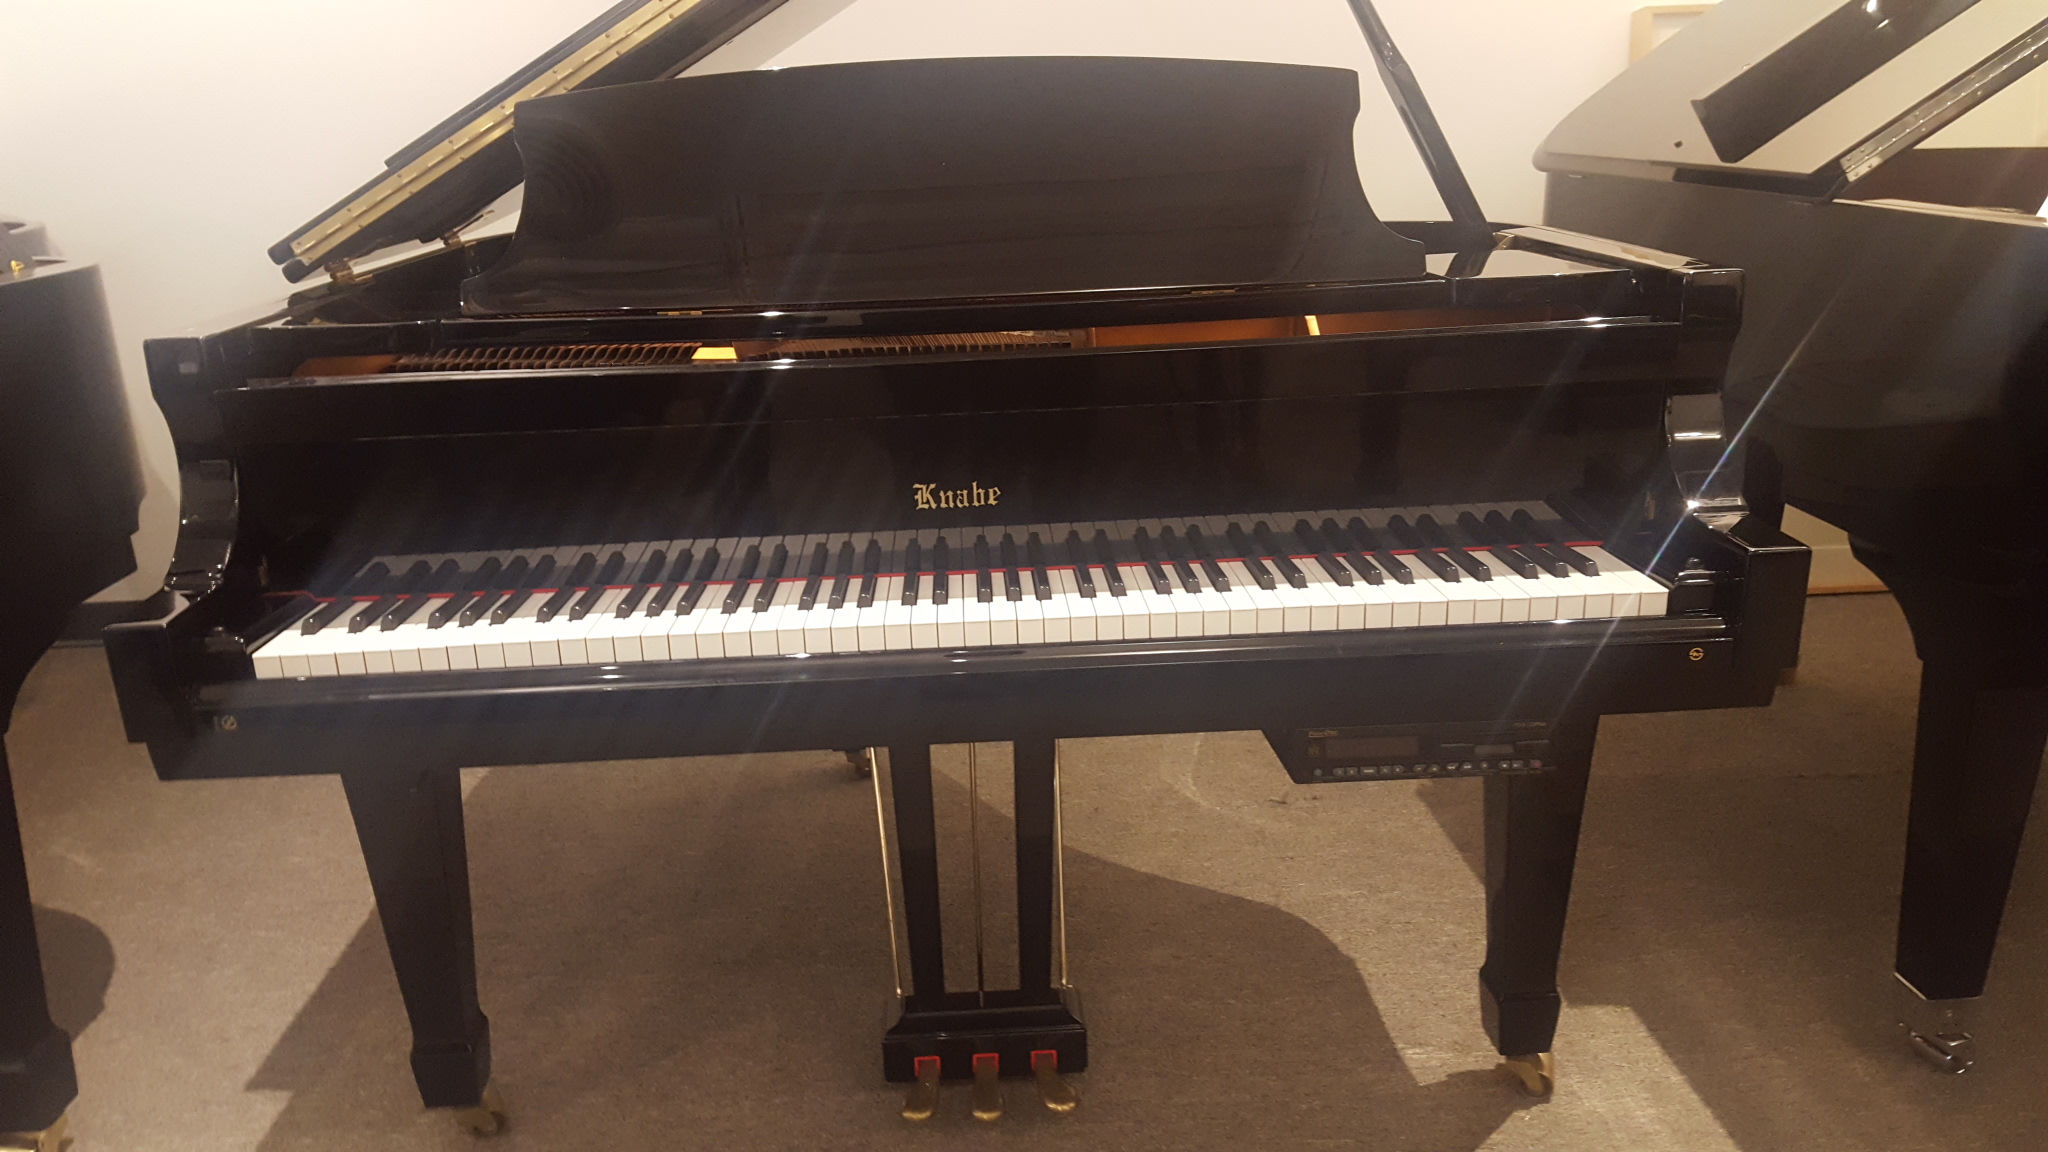 wm knabe co 5 grand w silent play option wells pianos